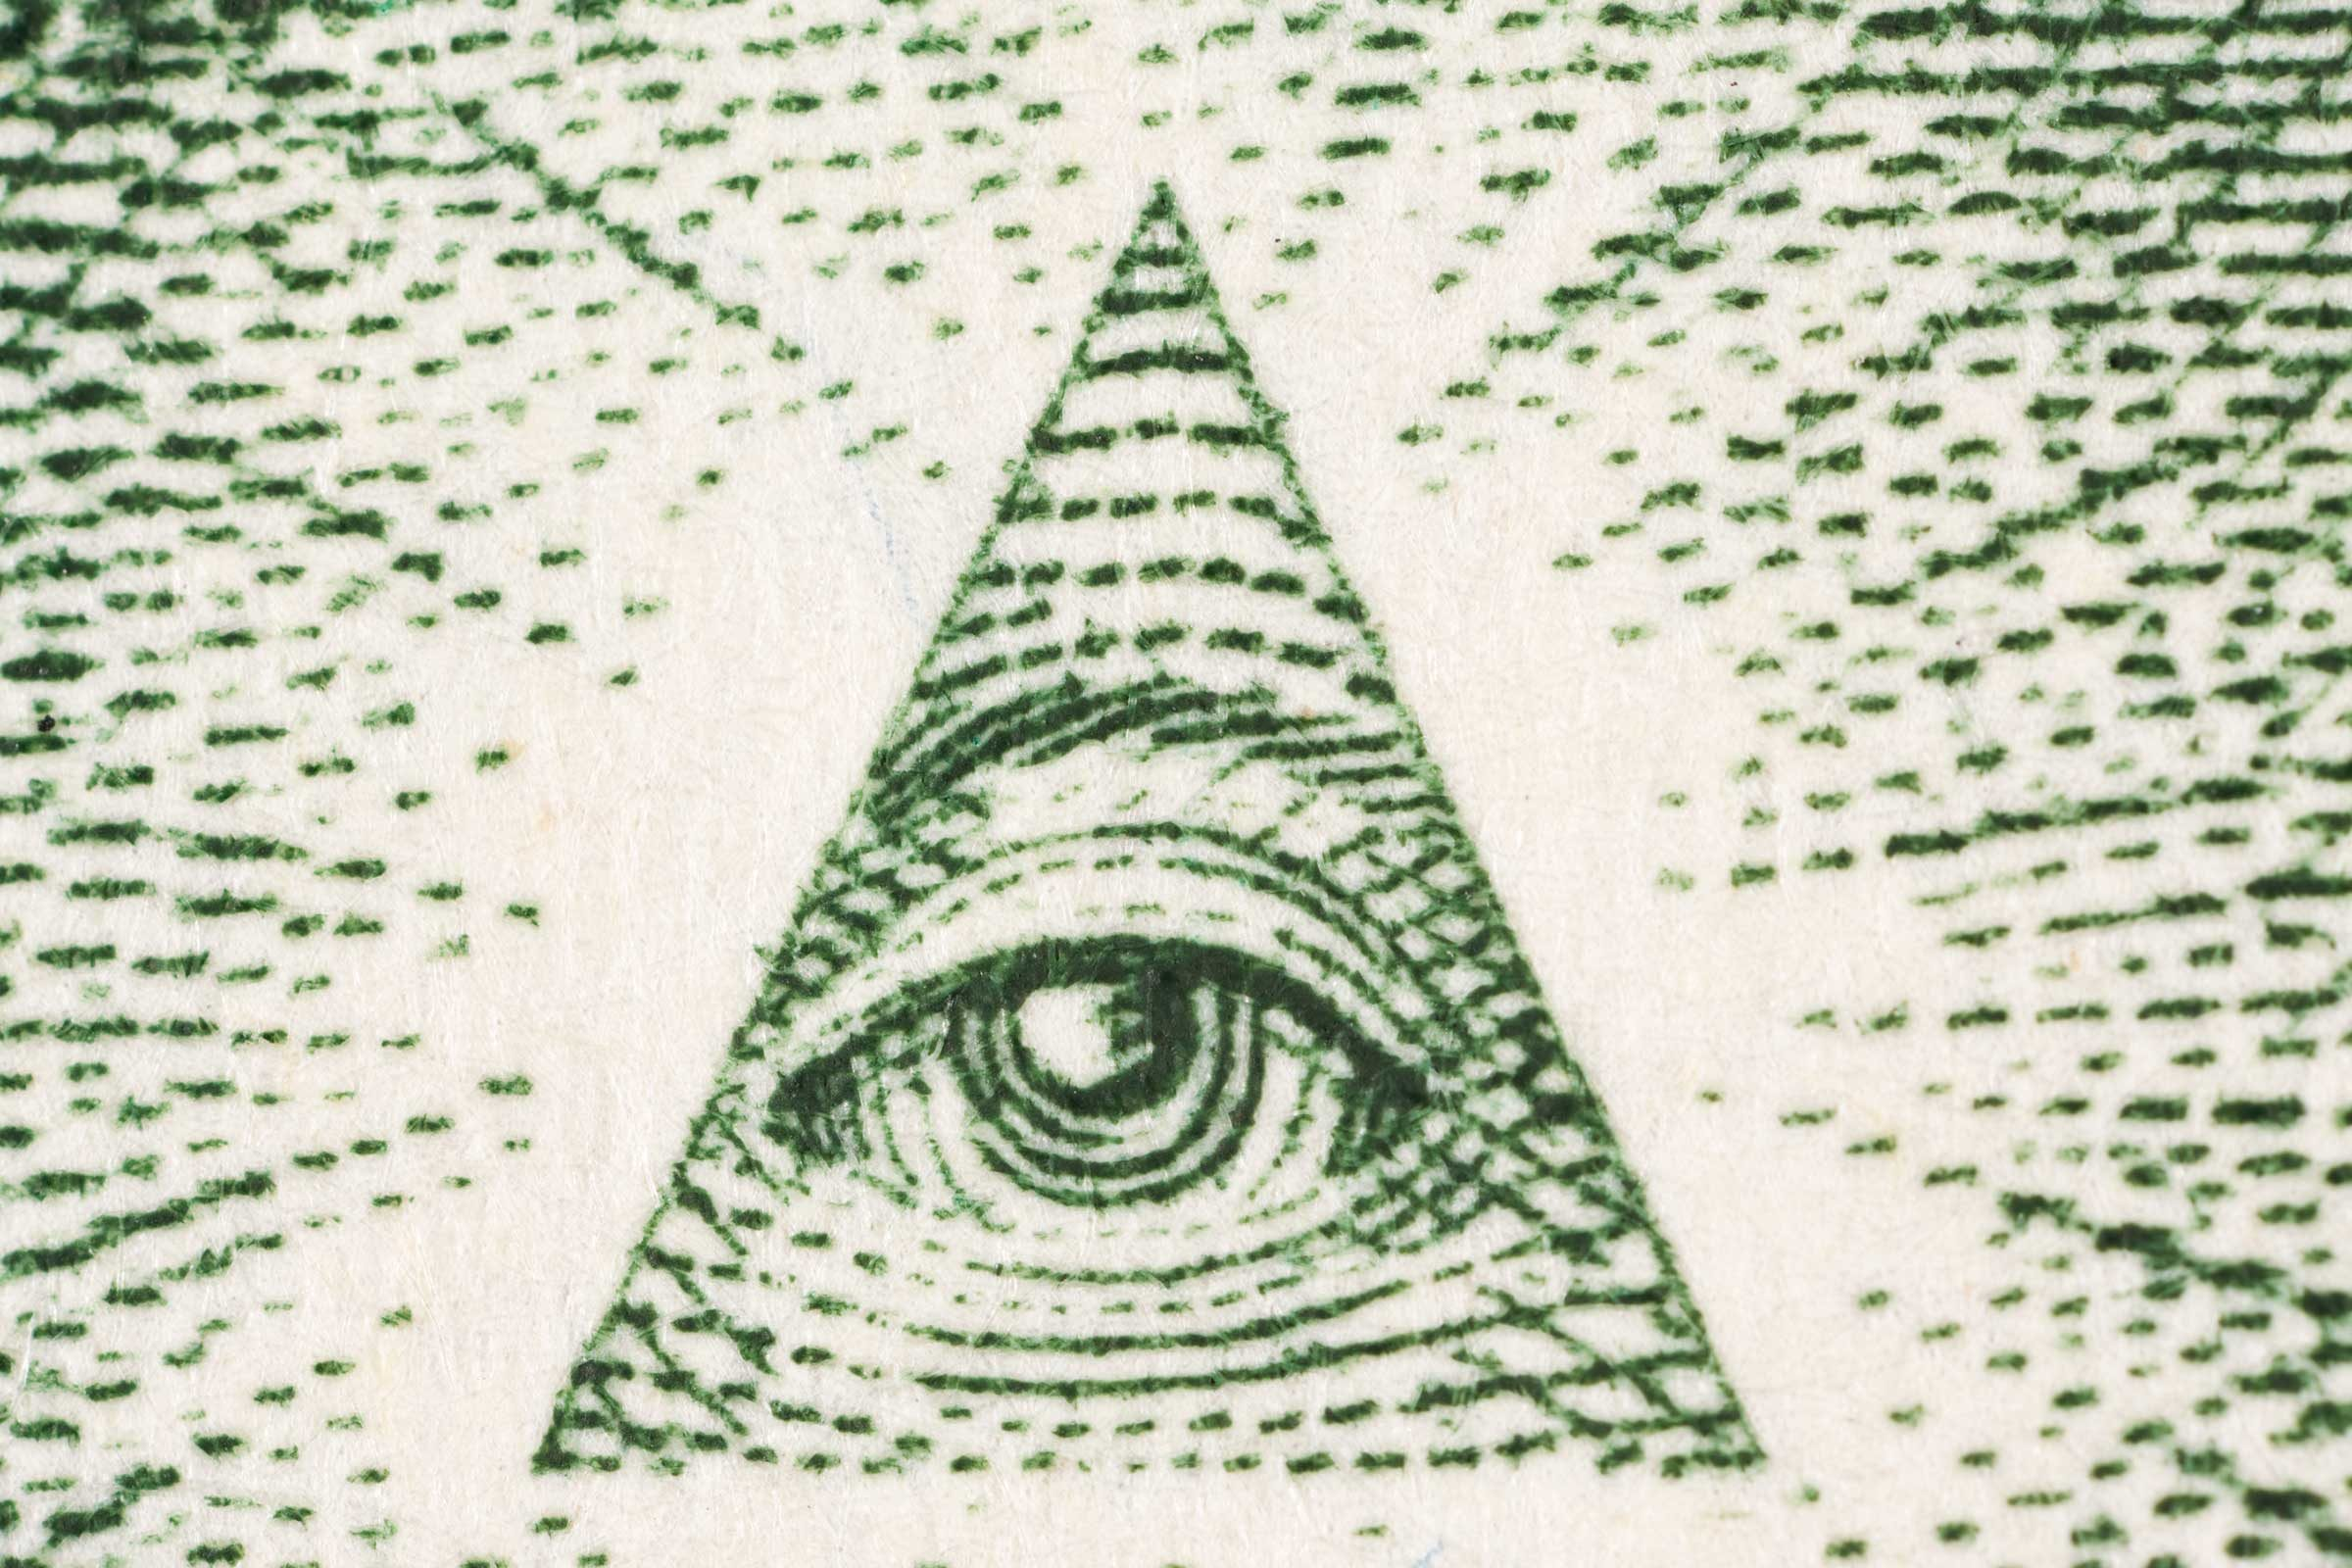 Dollar bill symbols what they mean readers digest eye above the pyramid biocorpaavc Images